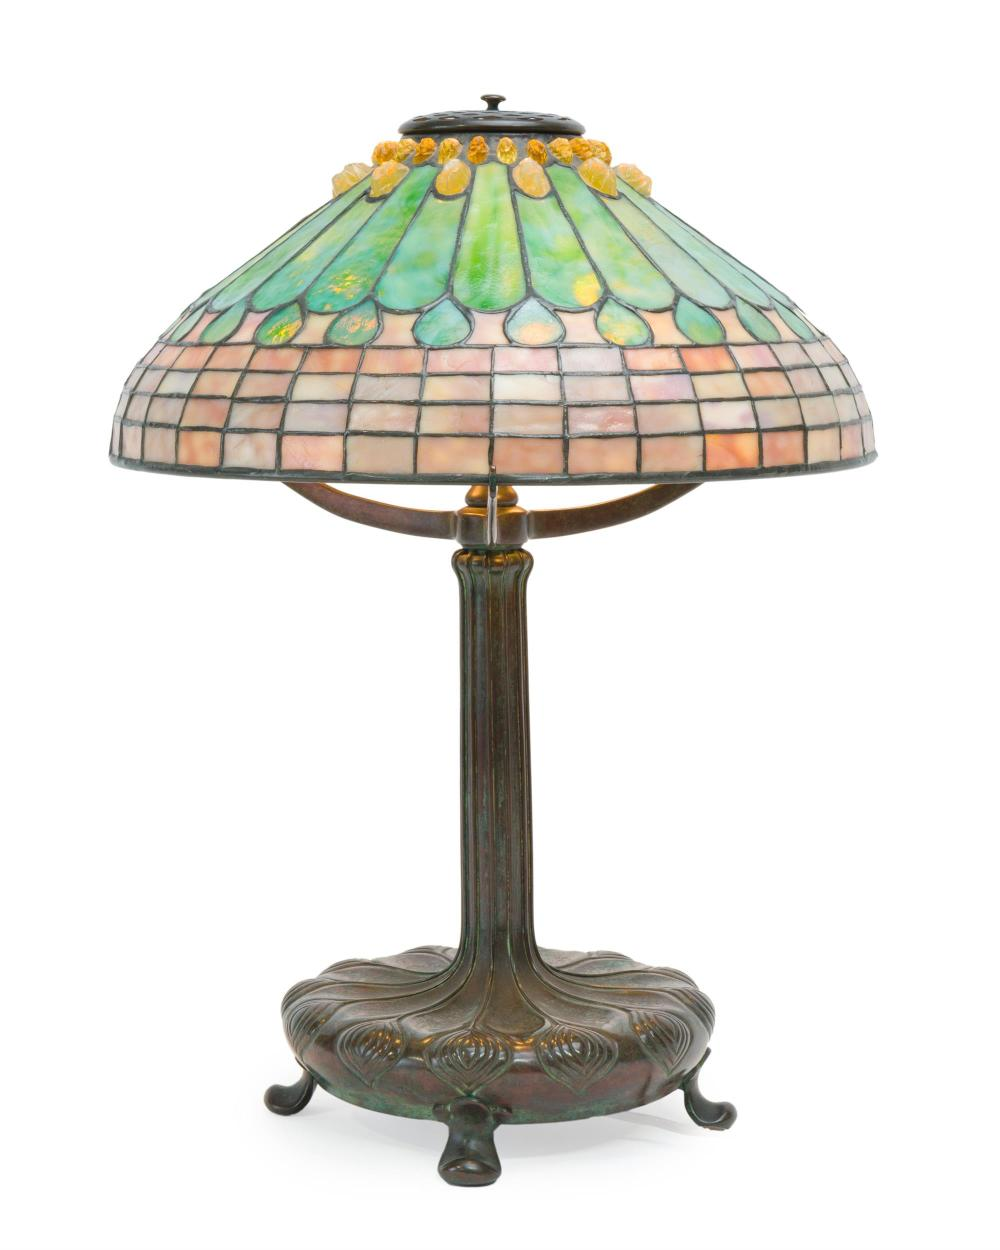 A Tiffany Studios leaded glass and bronze table lamp